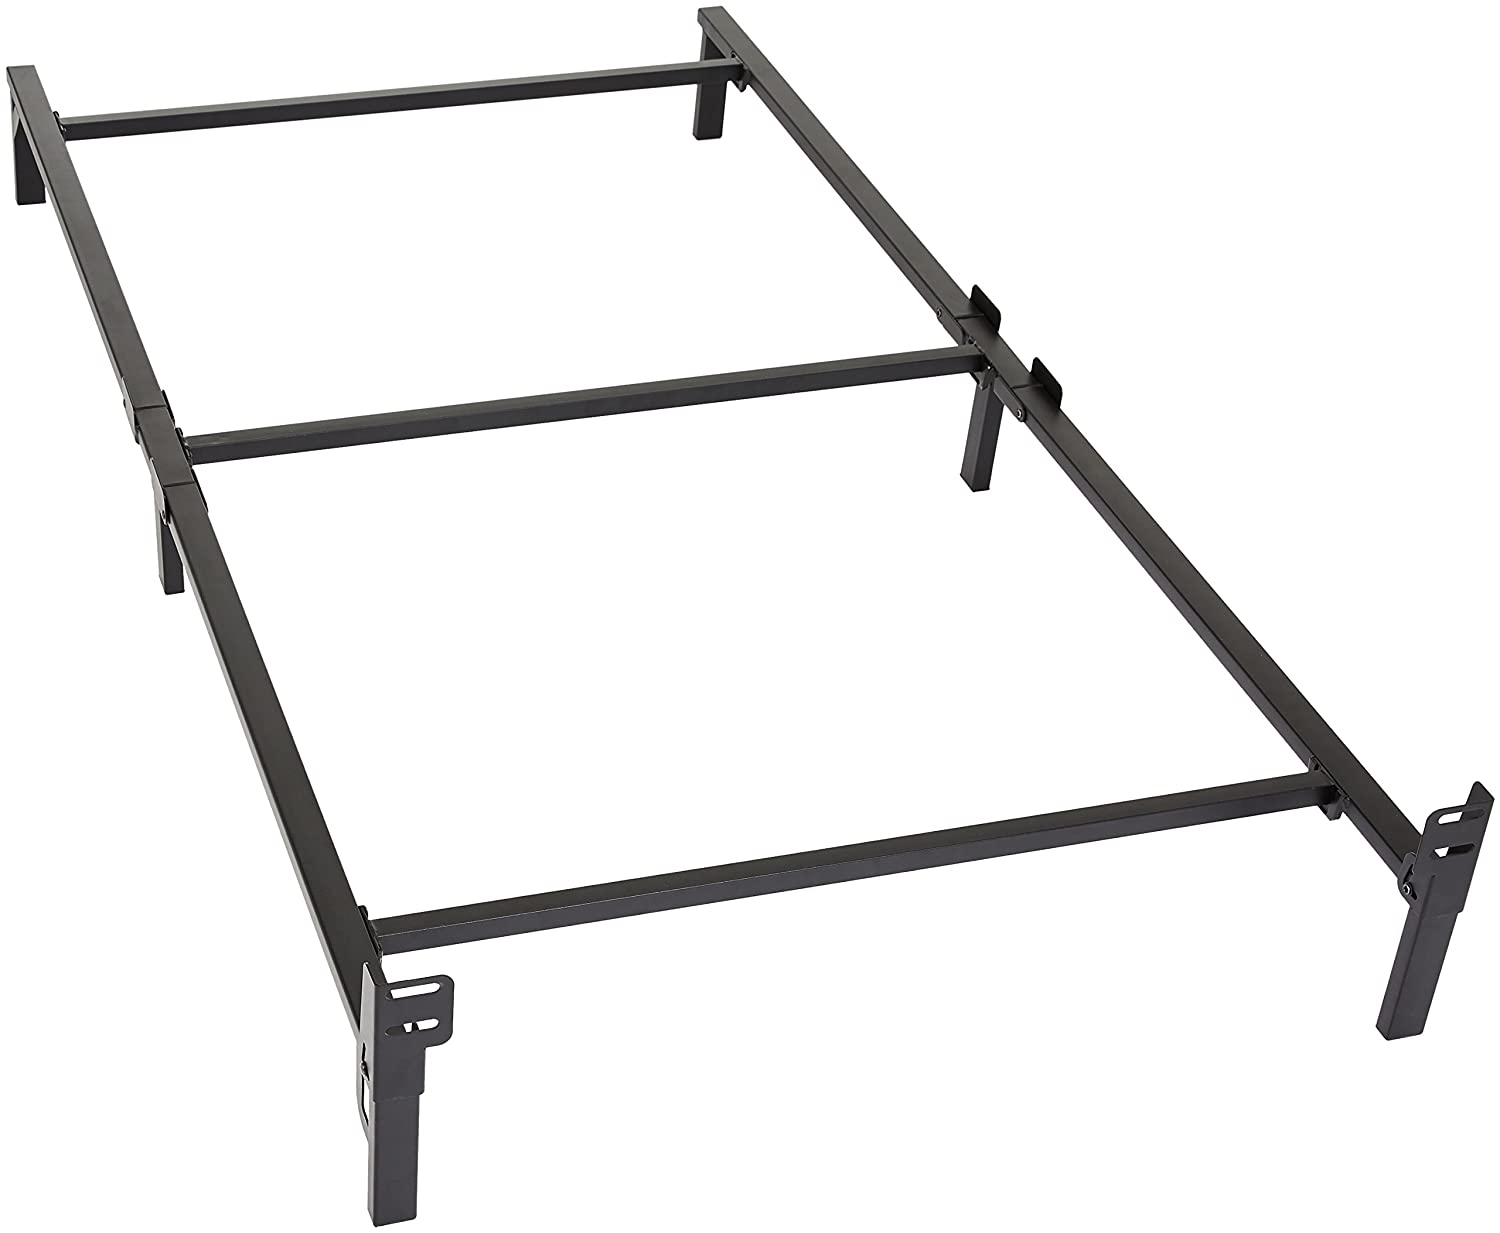 Amazon Basics 6 Legs Support Bed Frame, Strong Support for Box Spring and Mattress Set, Twin AmazonBasics AMZ-7ADSTBF-T